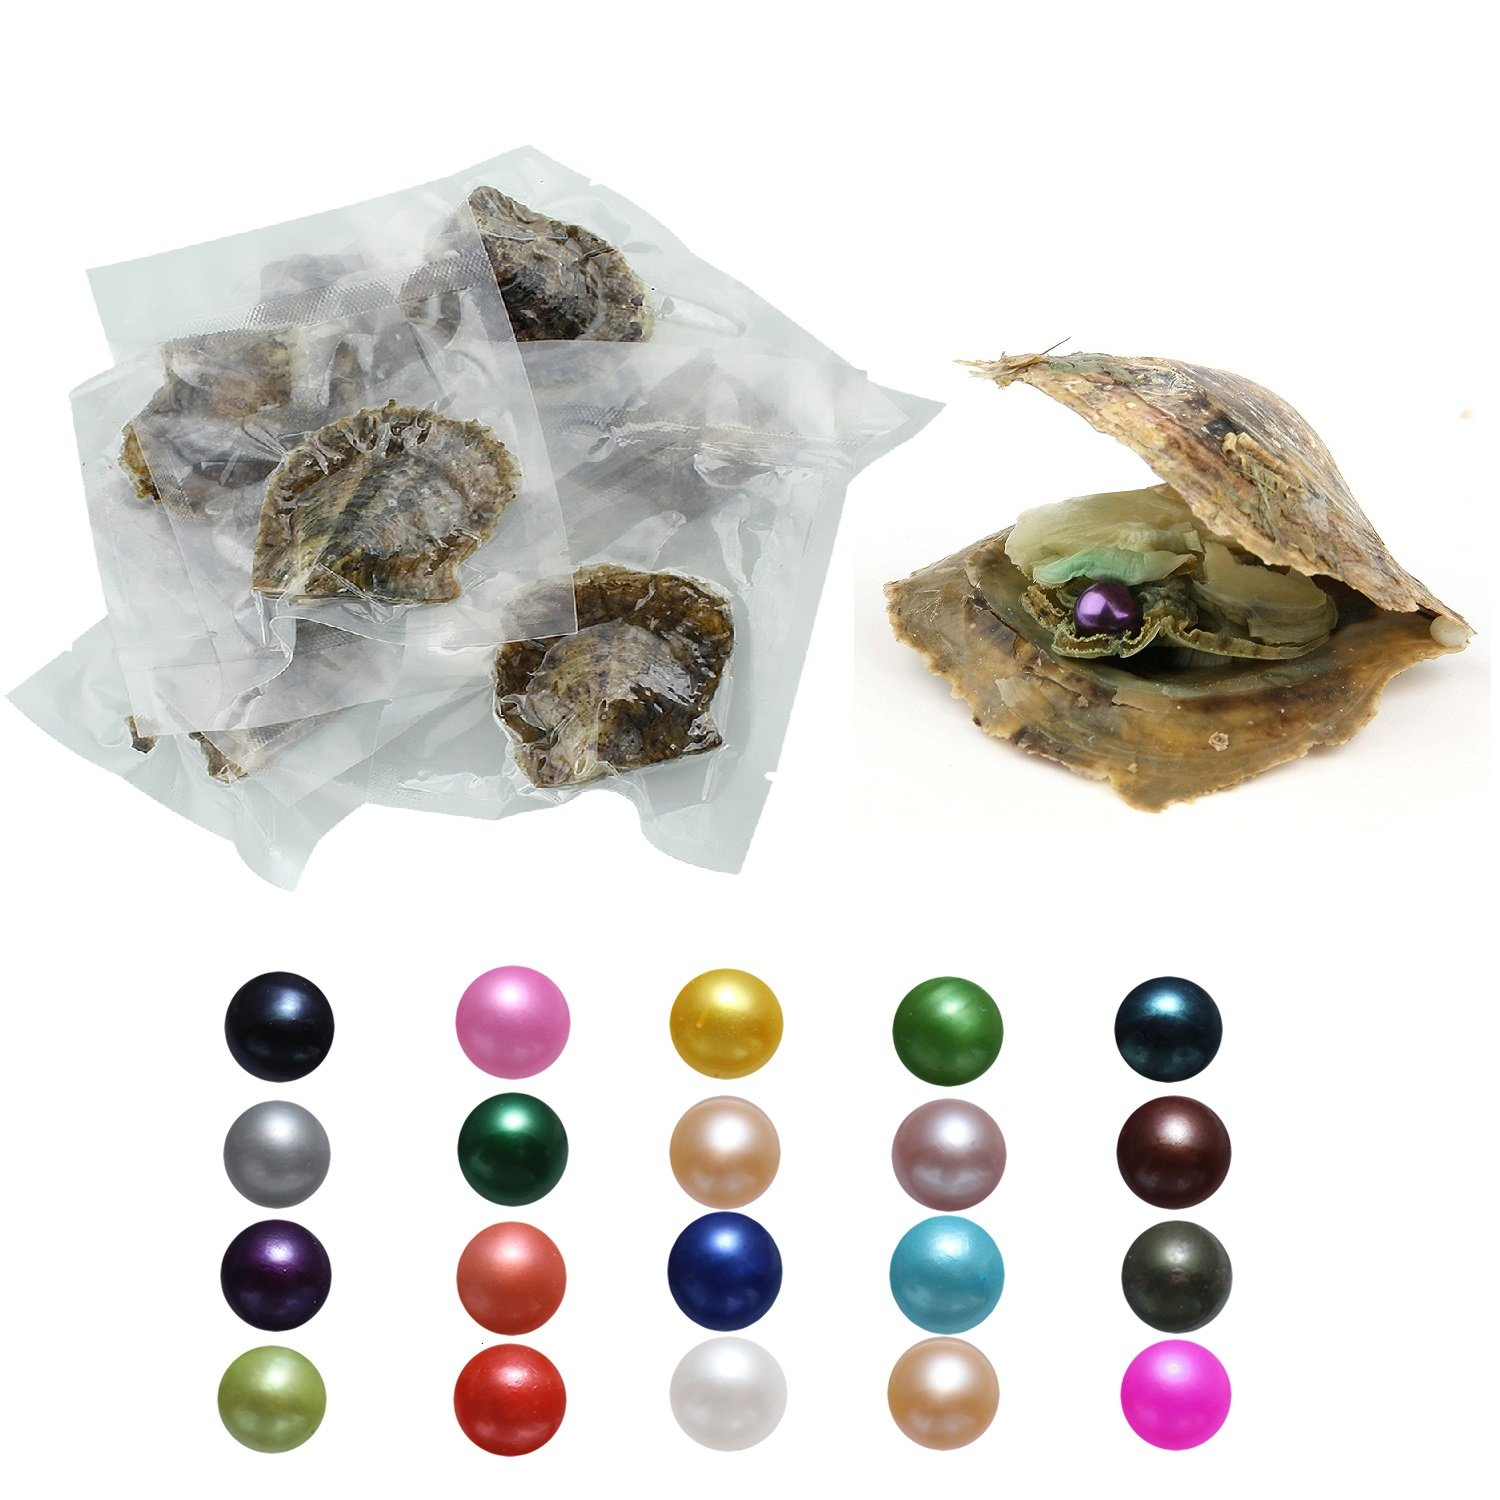 20PC Saltwater Akoya Pearls Oysters with 7-8mm Love Wish Pearl Inside 20 Mixed Colors, Jewelry Making or Birthday Gifts